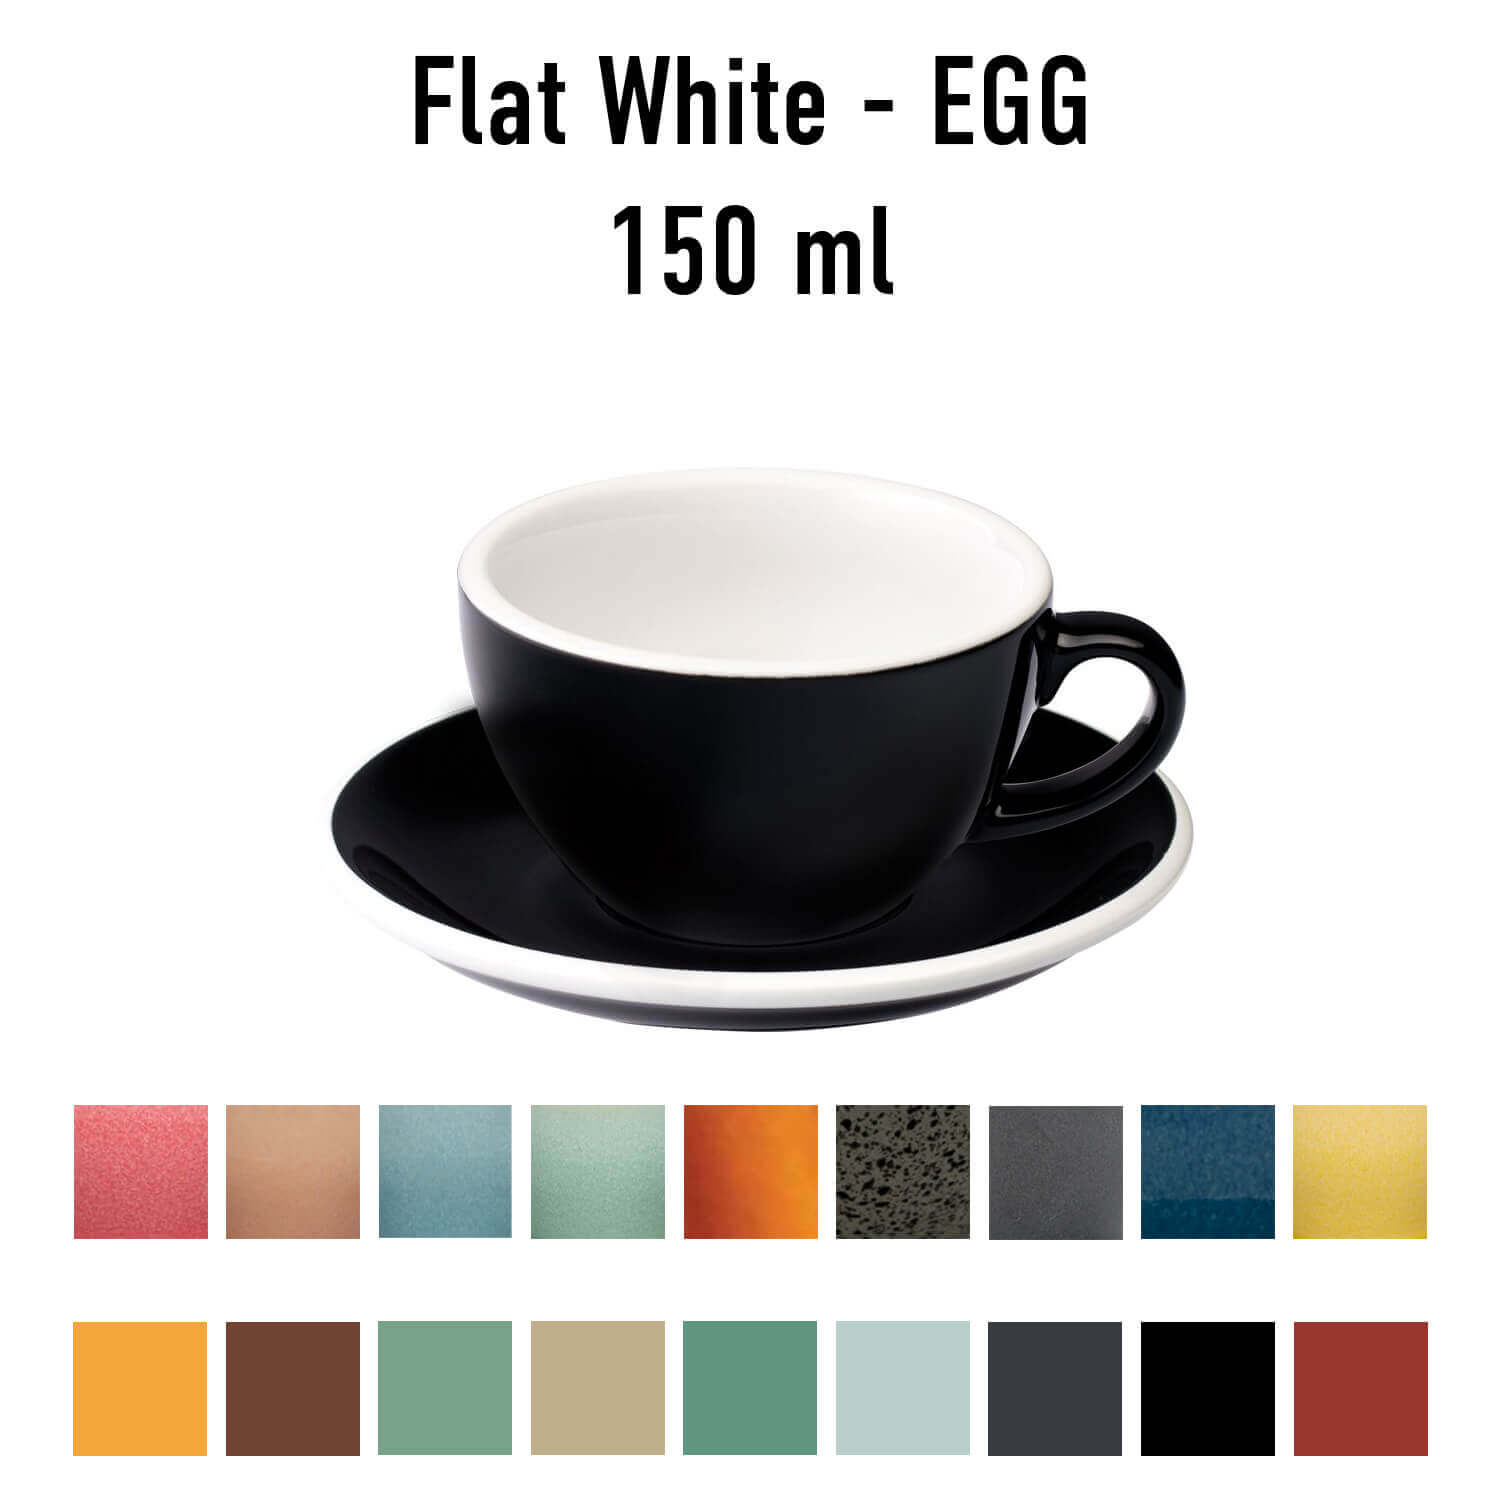 Loveramics - Egg - Flat white cup